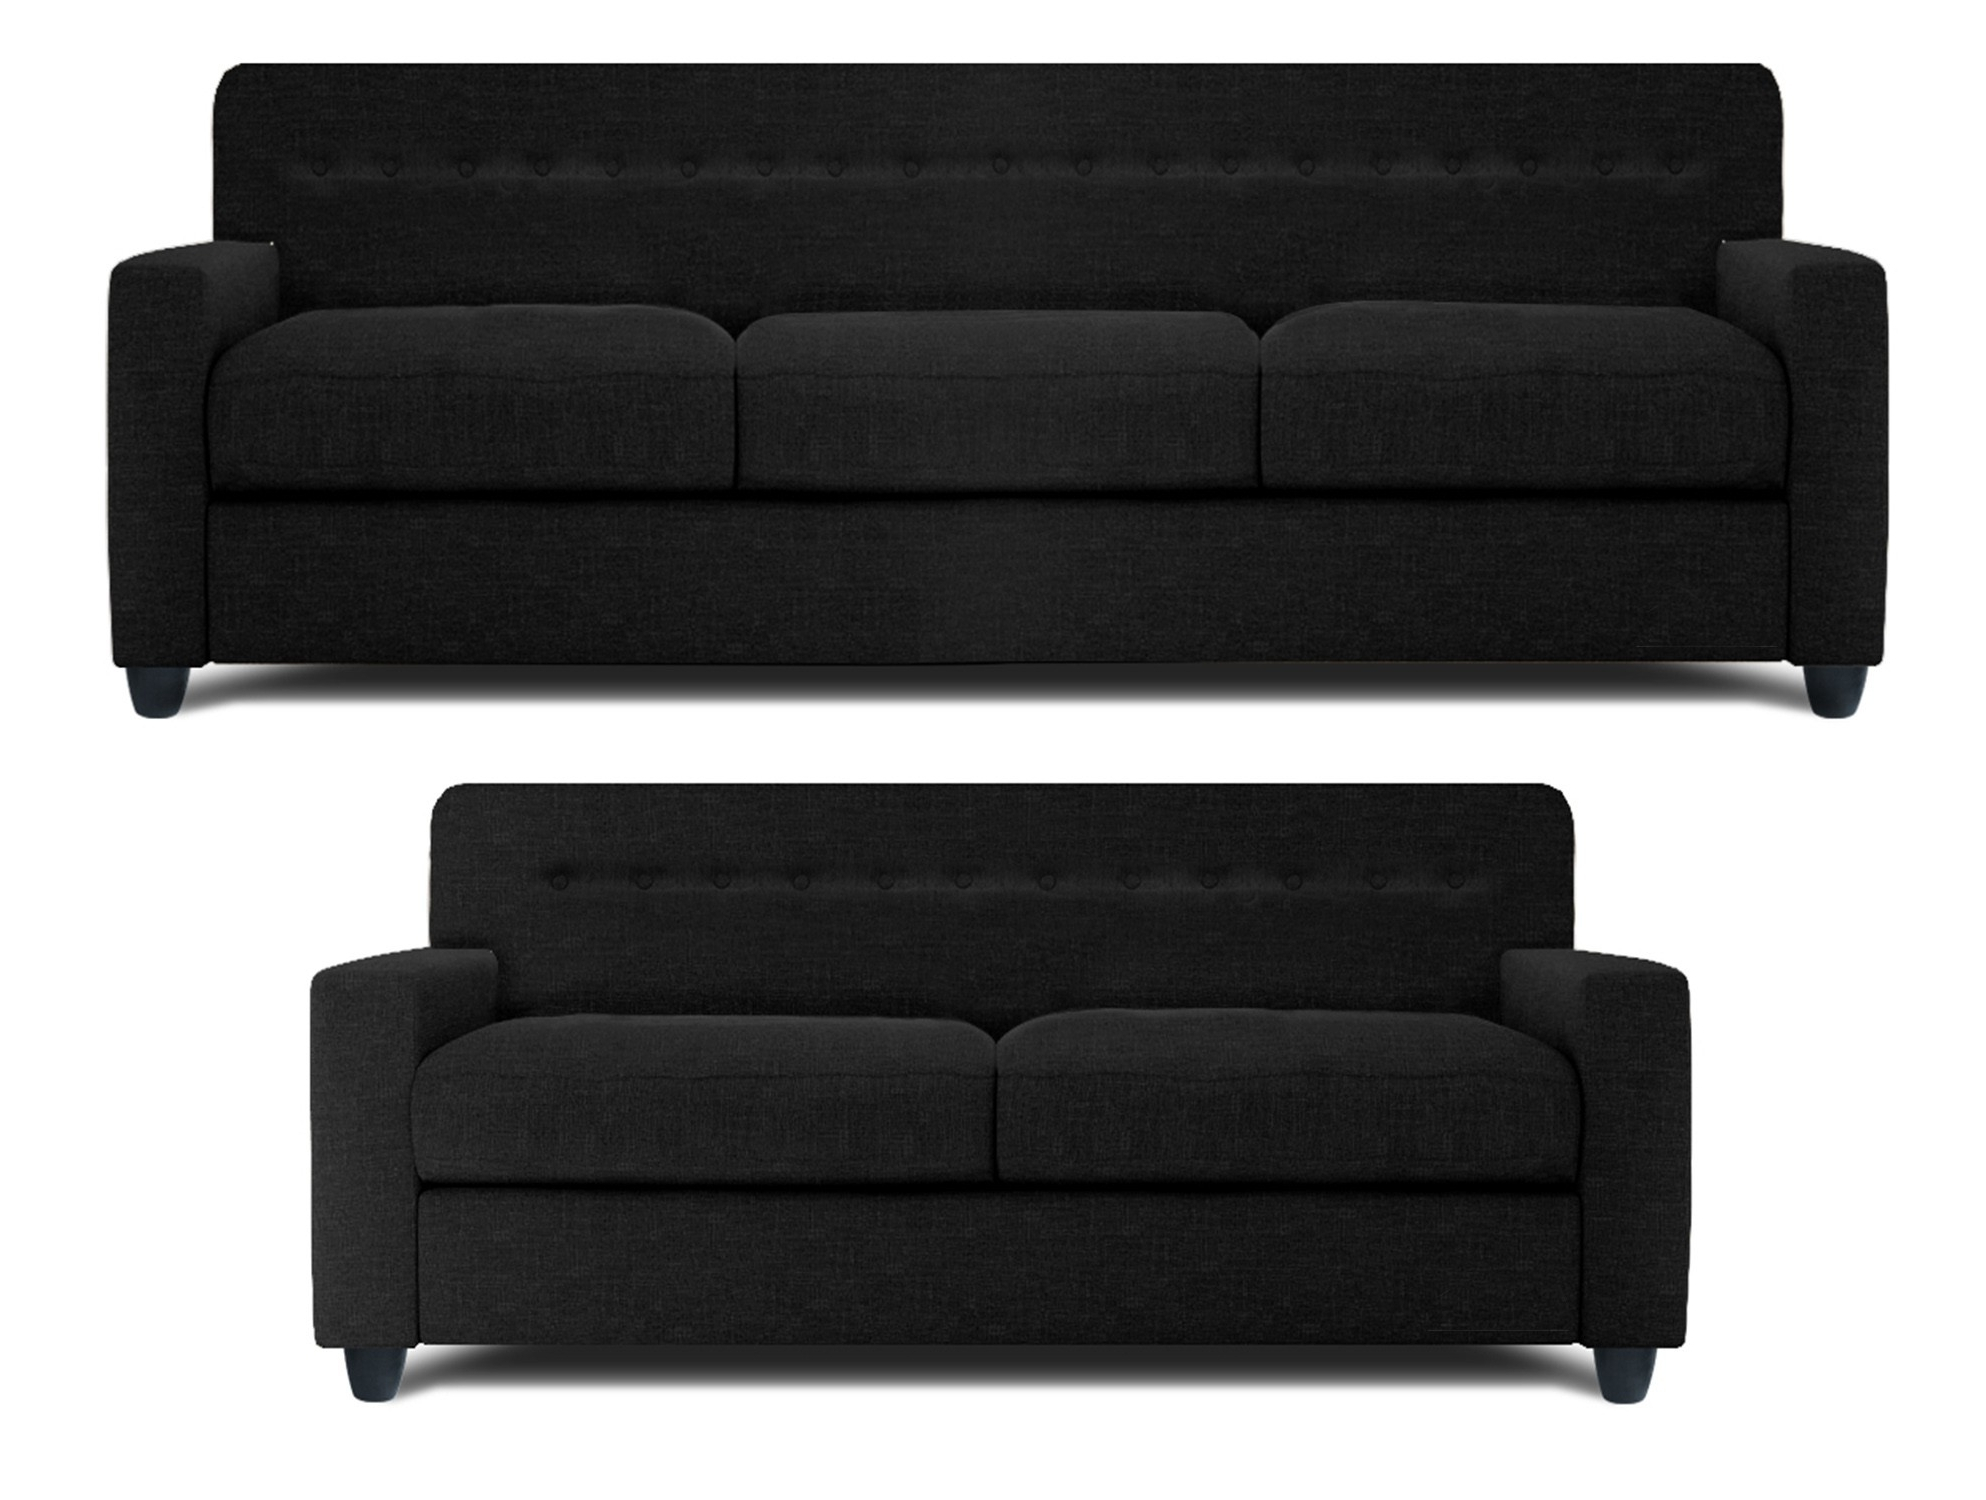 Black 2 Seater Sofas Throughout Most Current Dolphin Solitaire Fabric 3+2 Seater Sofa Set Black (Gallery 16 of 20)